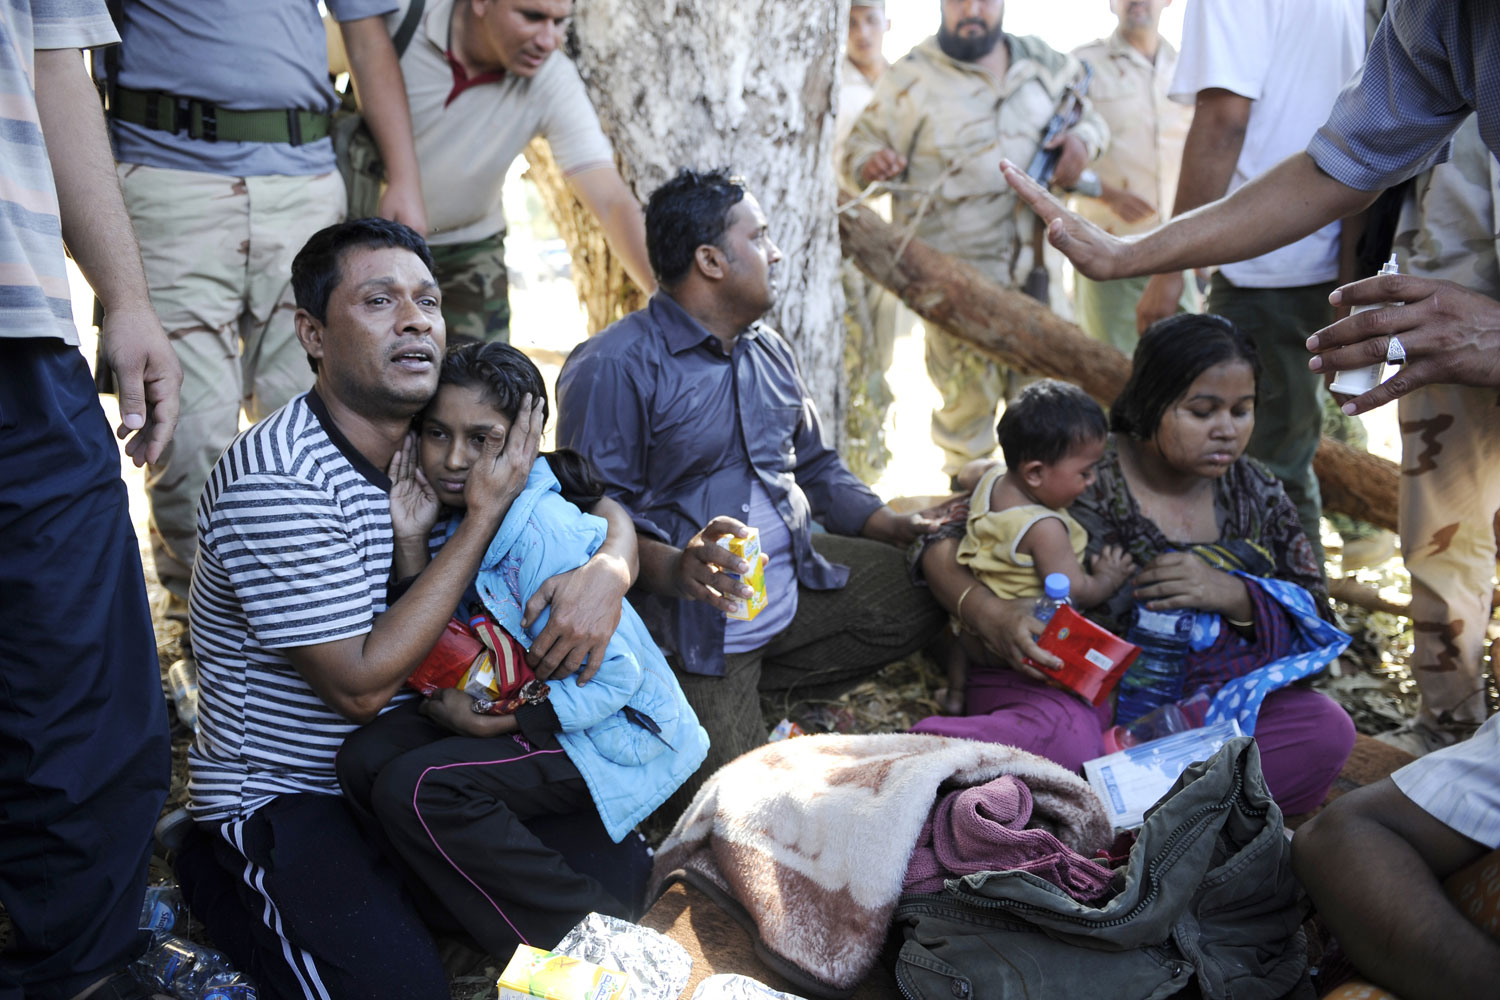 October 17, 2011. Libyan National Transitional Council (NTC) fighters provide displaced Bangladeshis with food and drink after fleeing Sirt during heavy fighting between loyalist troops and NTC forces. Families of former Libyan regime officials streamed out of the coastal city, including the mother and brother of Muammar Gaddafi's spokesman Mussa Ibrahim.